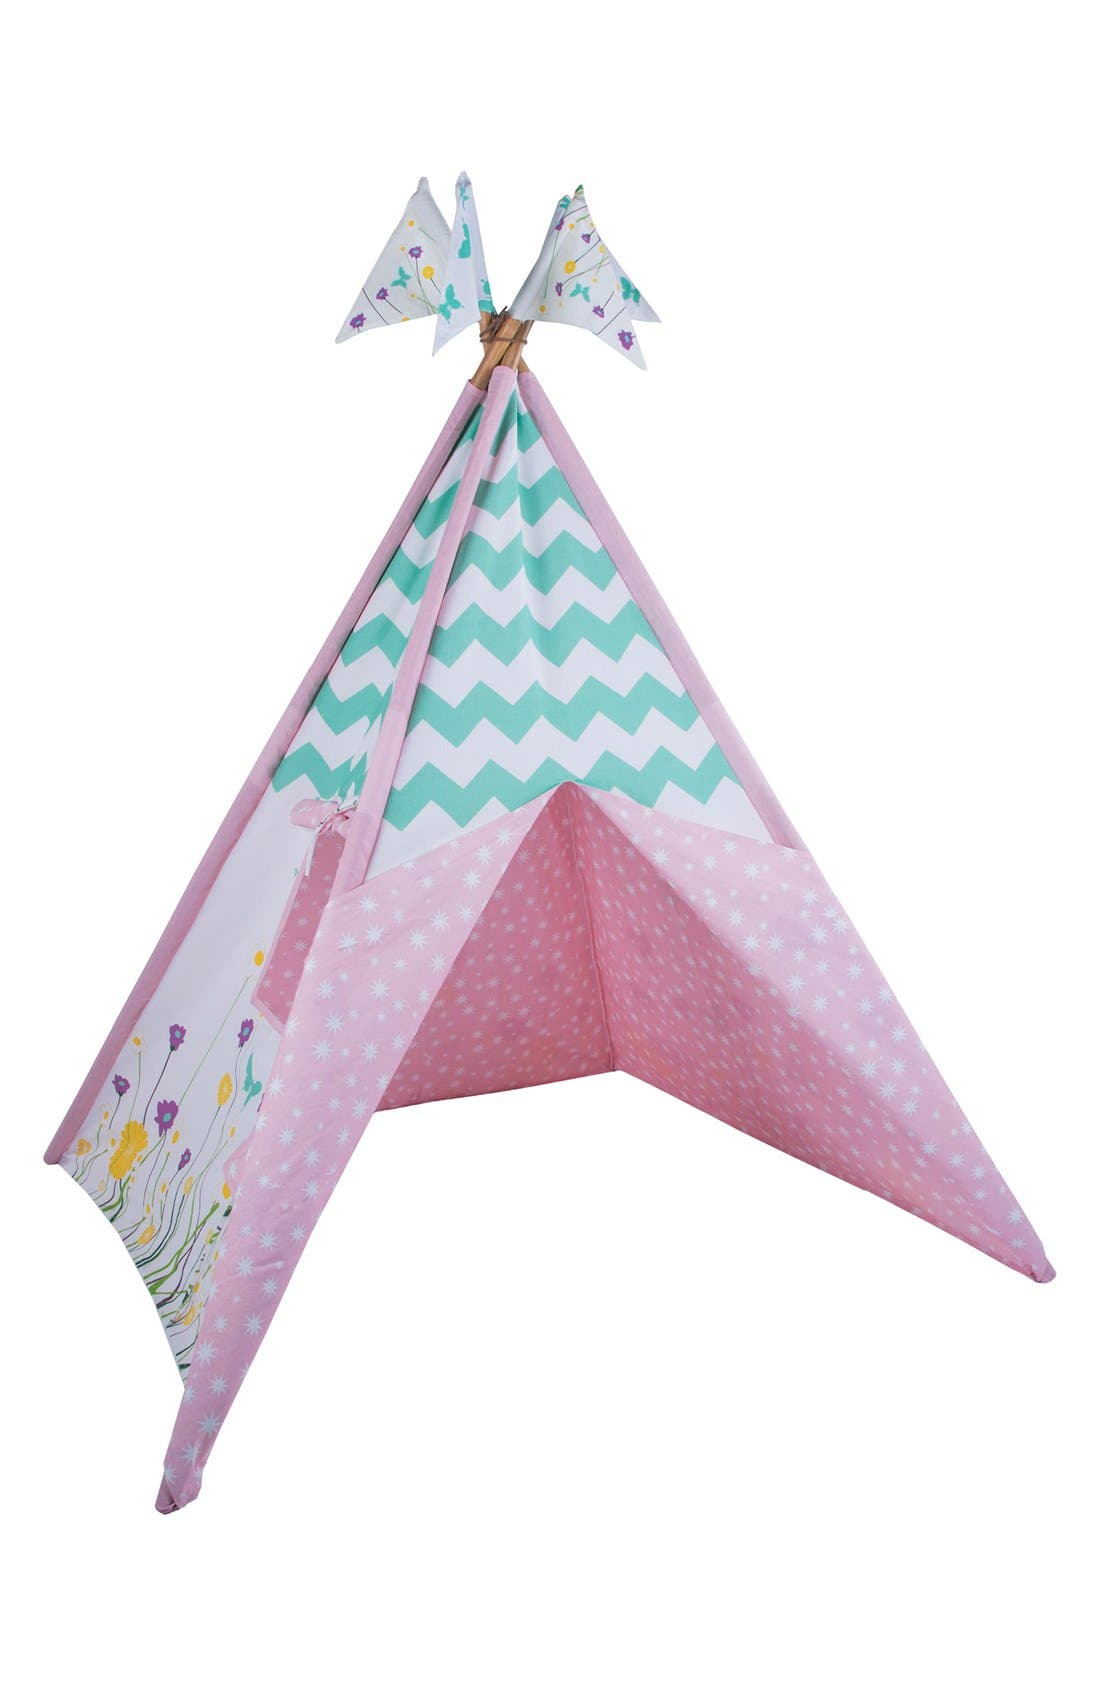 Main Image - Pacific Play Tents 'Wildflowers' Cotton Canvas Teepee